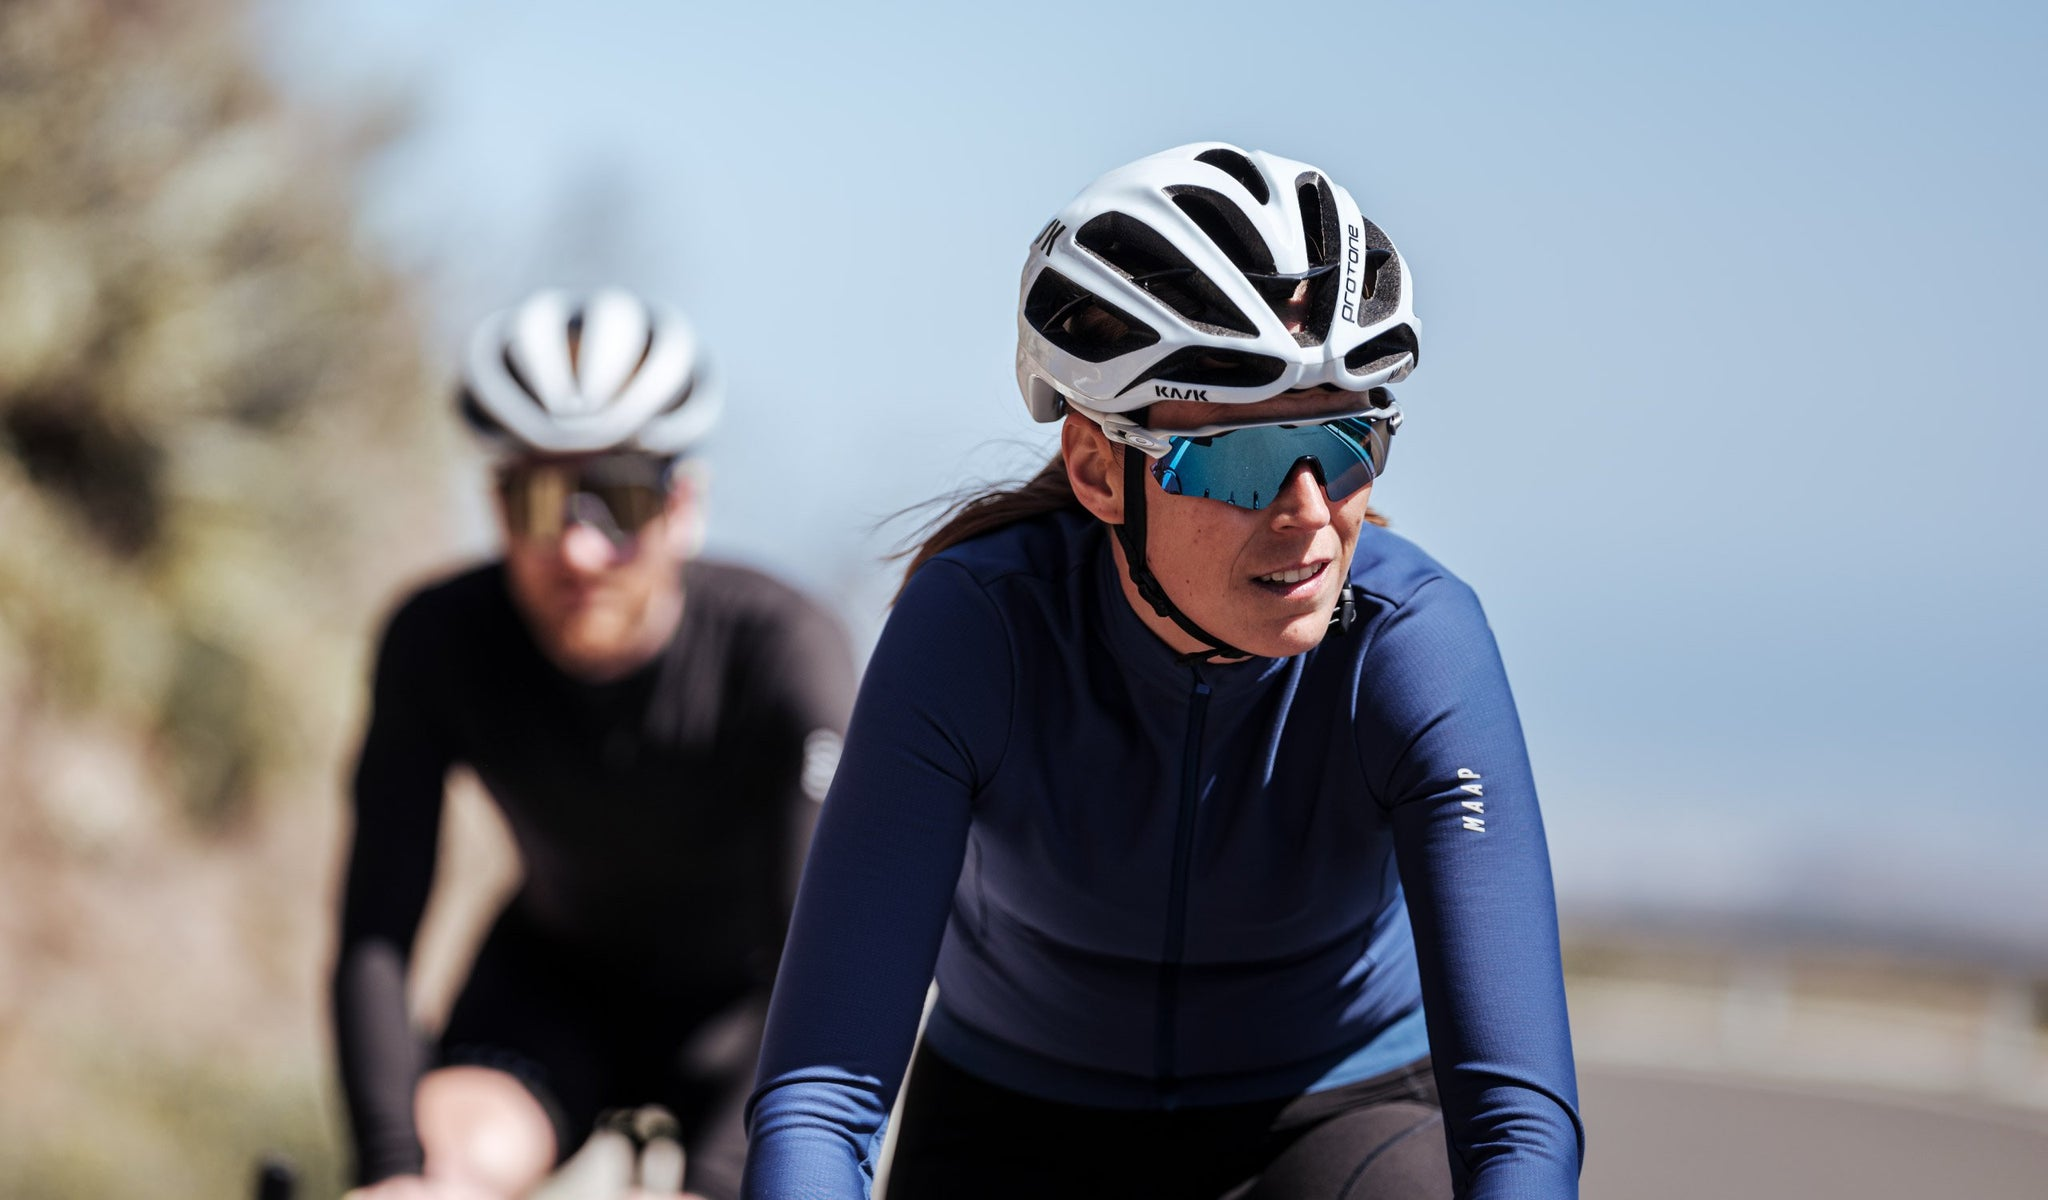 MAAP Women's Force Pro Long Sleeve Cycling Jersey for riding in cool to cold weather conditions.